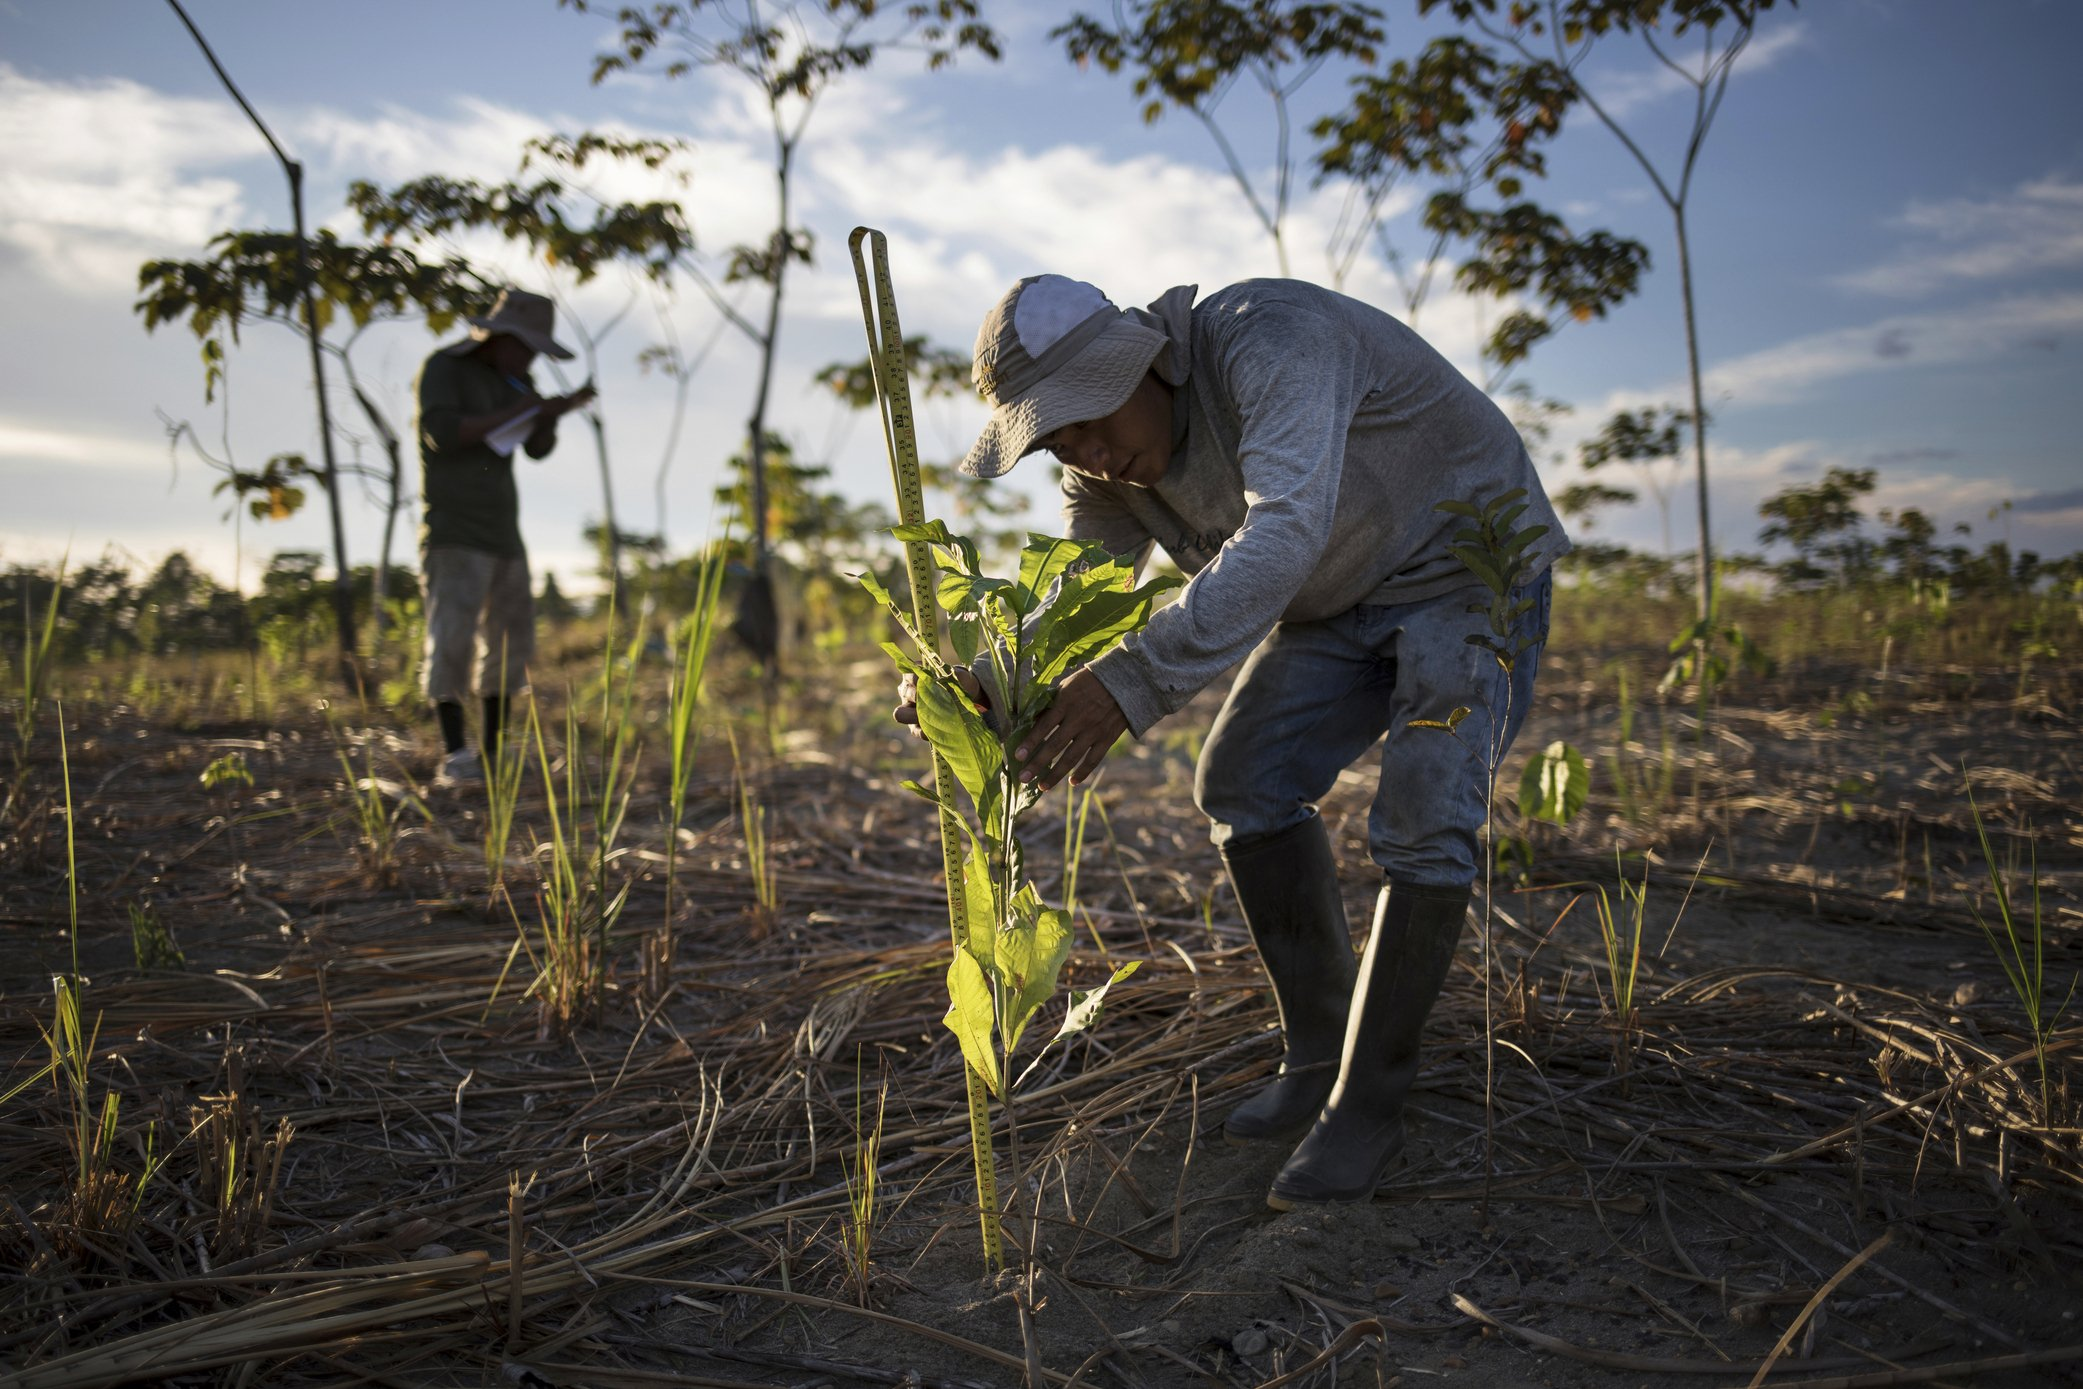 In restored forests, hope for world beset by climate change